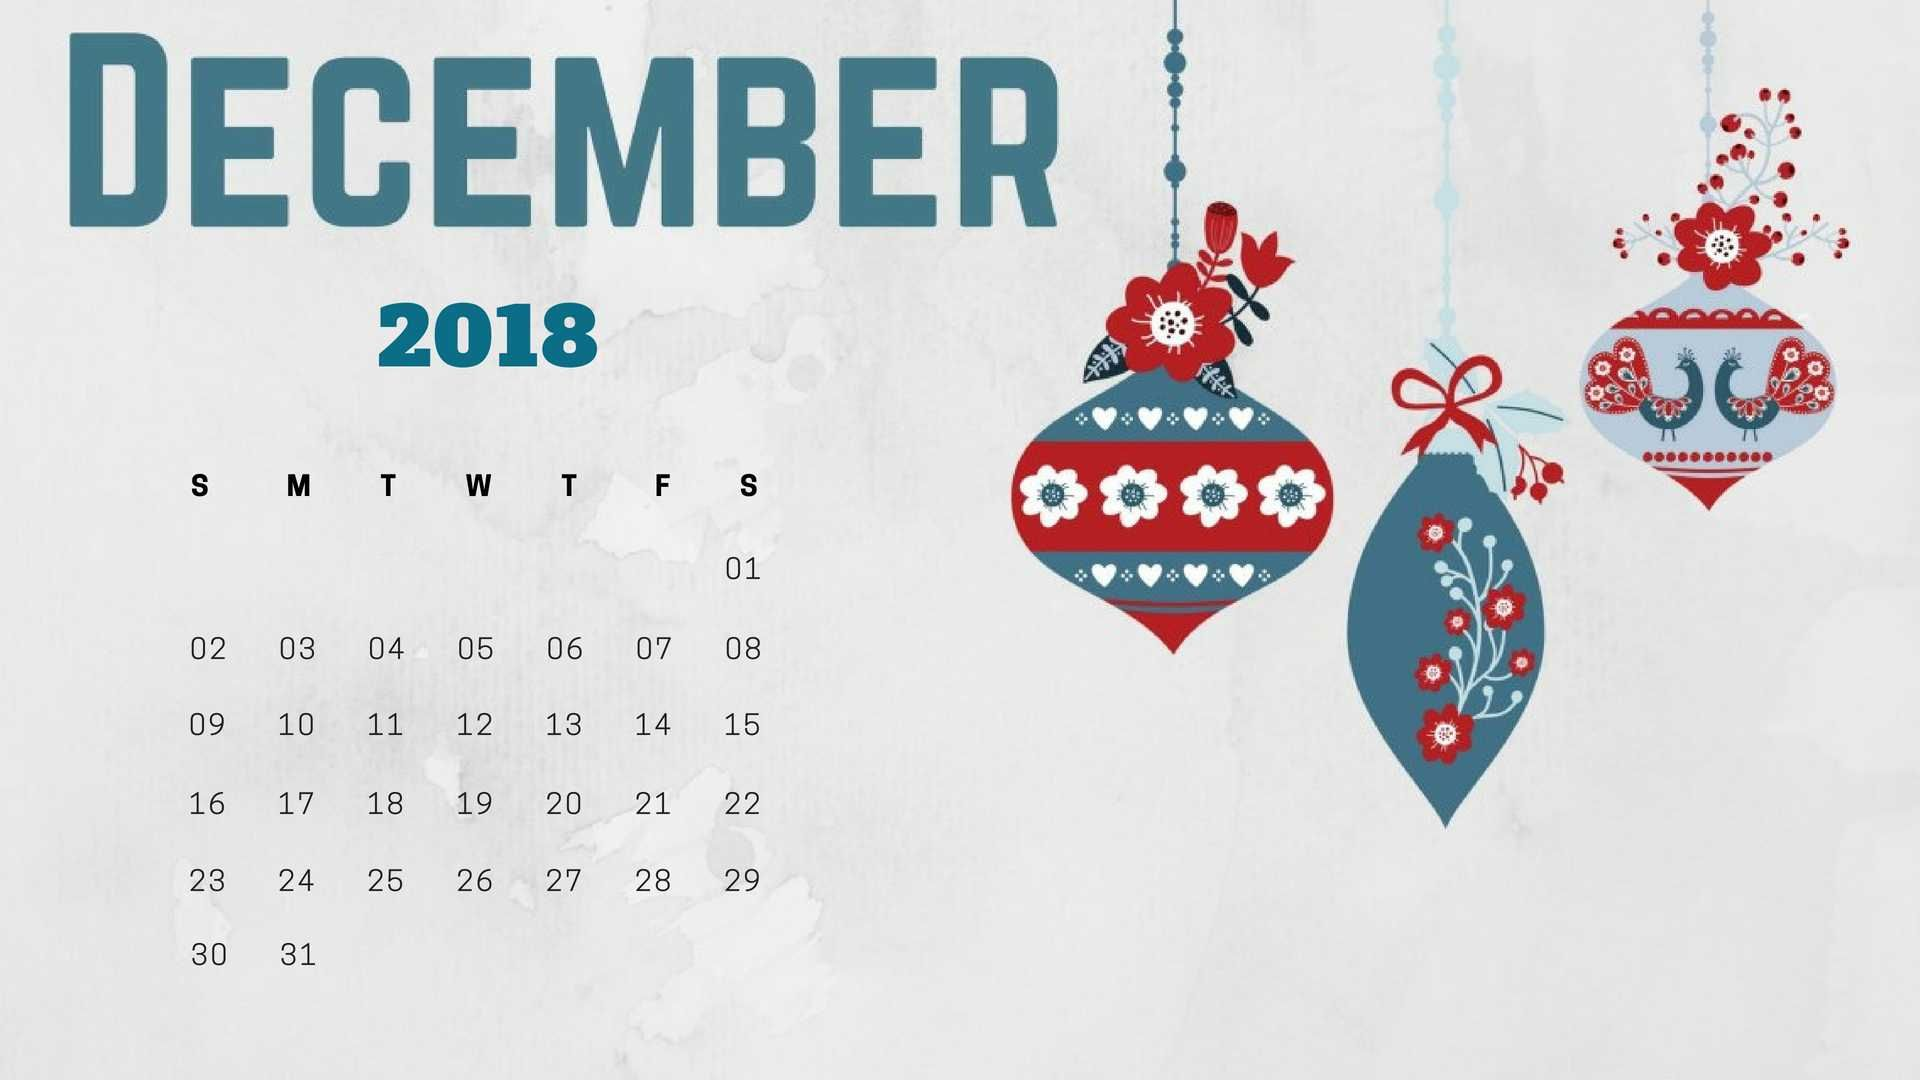 Desktop Calendar Wallpaper December 2019 December 2018 Calendar Wallpaper for Desktop Background Laptop and